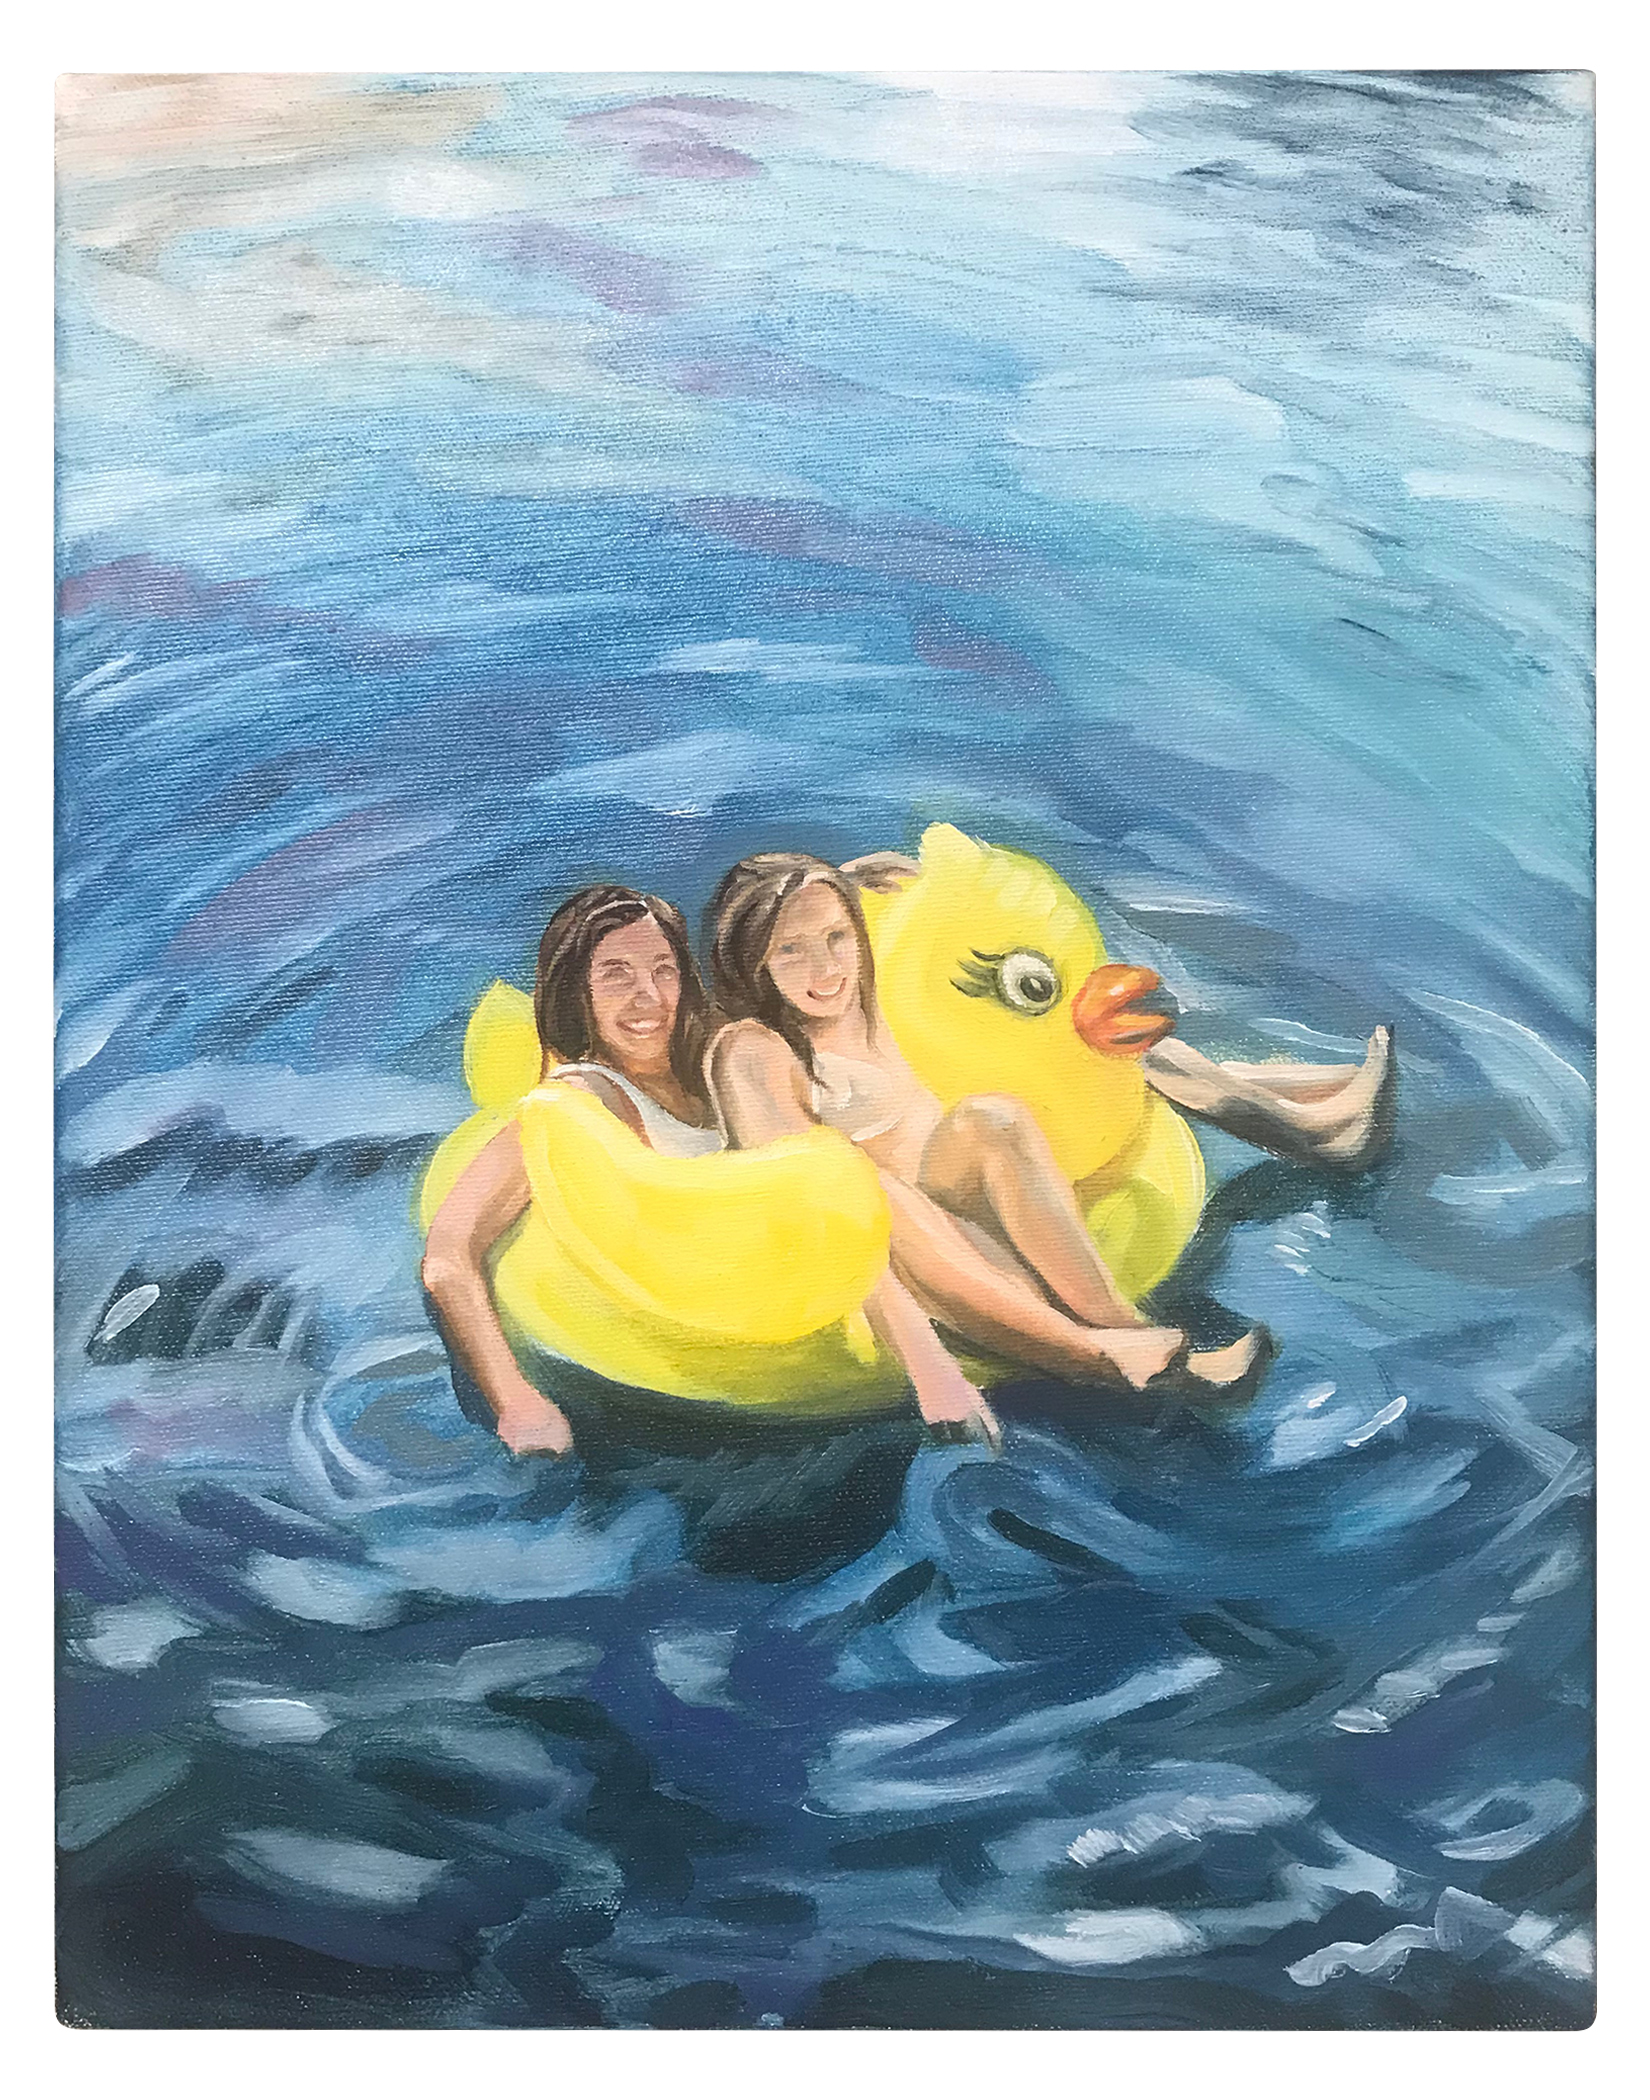 "TWO BABES FLOATING 11"" x 14"" Oil on Canvas $300.00 